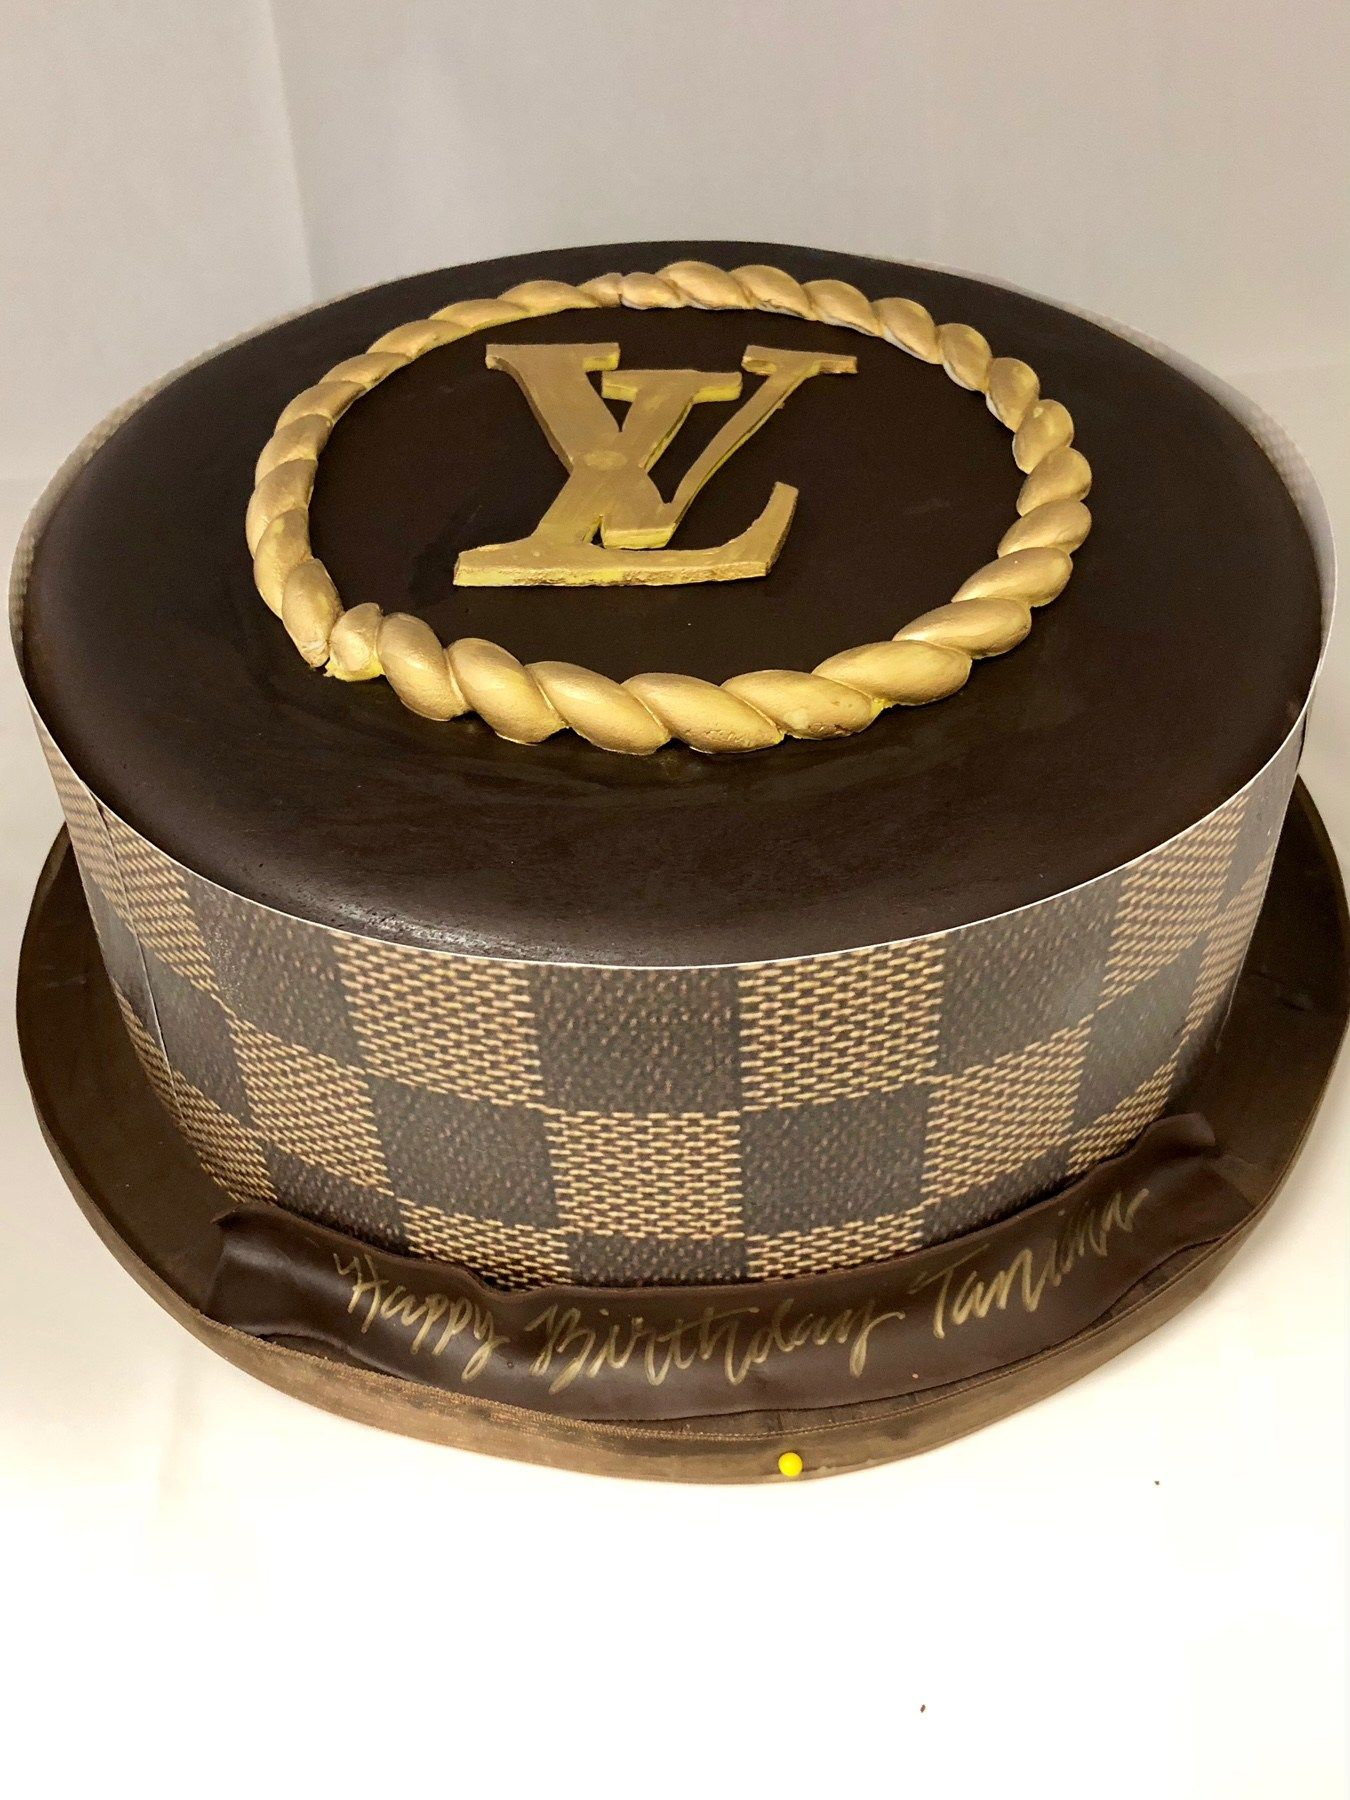 Stupendous Louis Vuitton Inspired Cake Fb 126 With Images Louis Vuitton Personalised Birthday Cards Veneteletsinfo